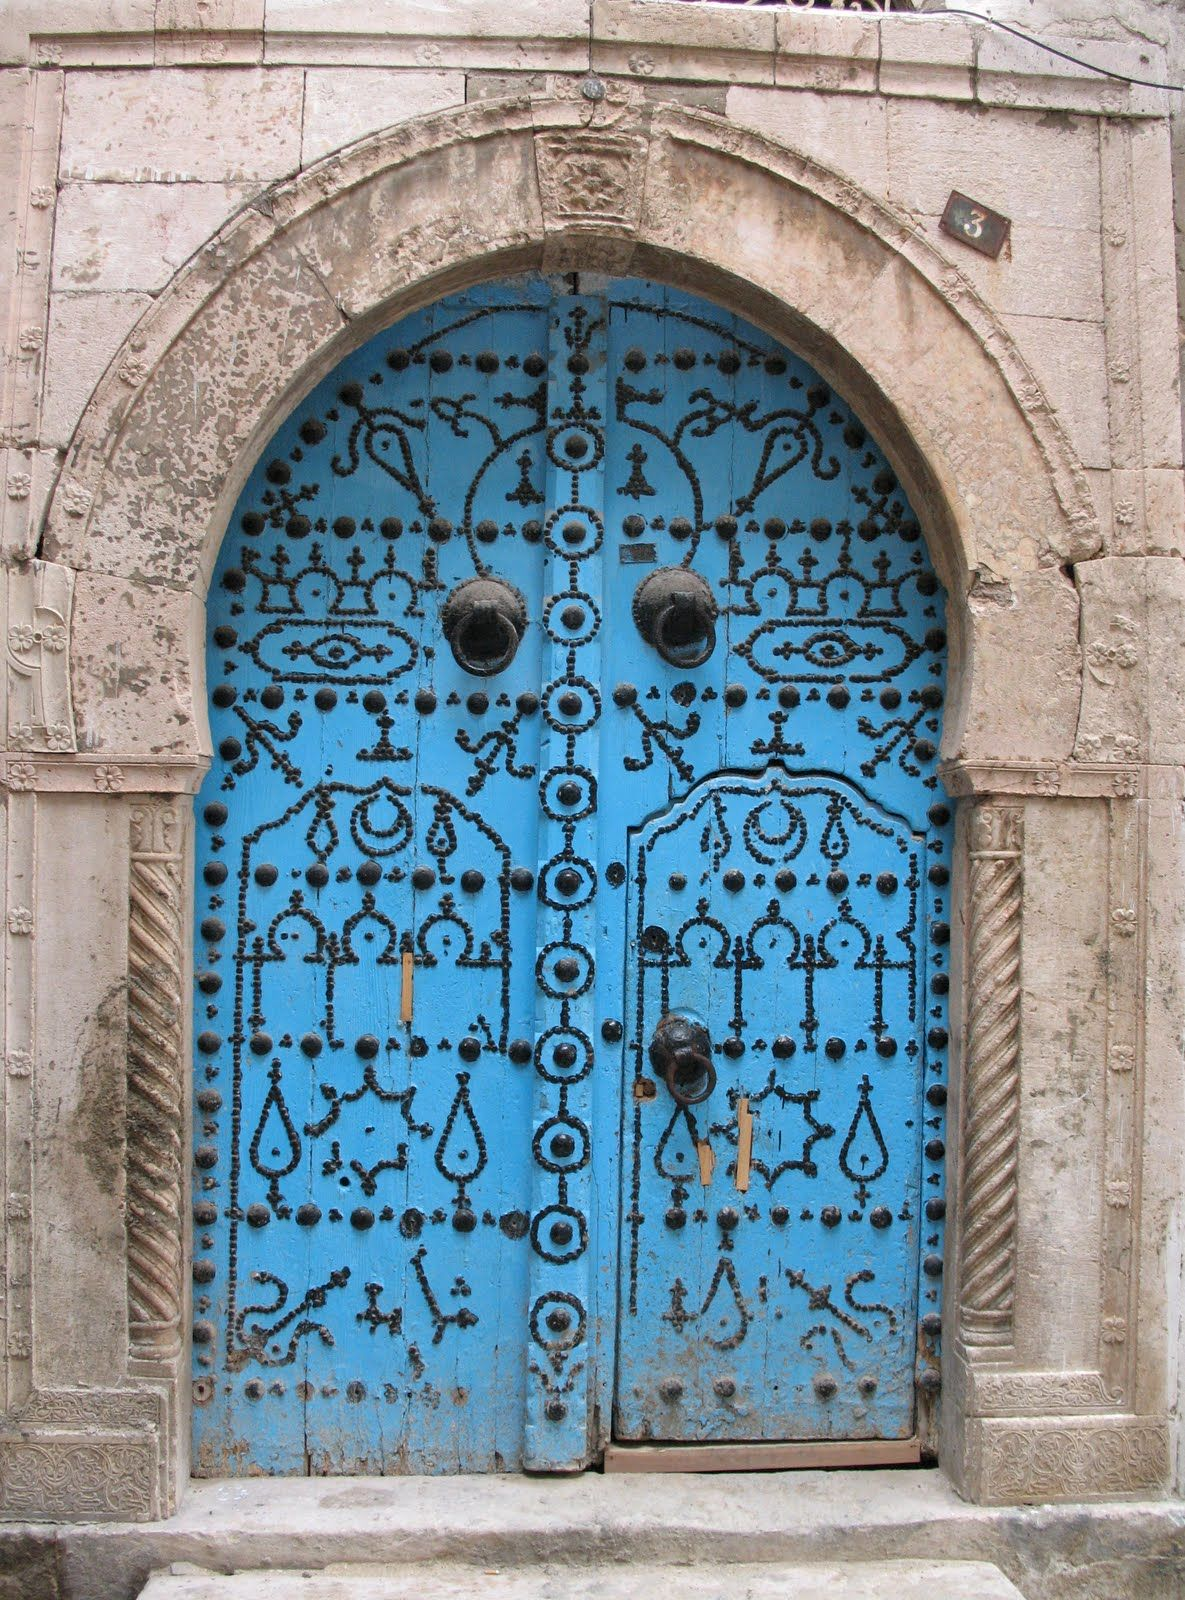 Adore Moroccan architecture and art especially the beautiful arches on ornately embellished doorways. & Adore Moroccan architecture and art especially the beautiful arches ...